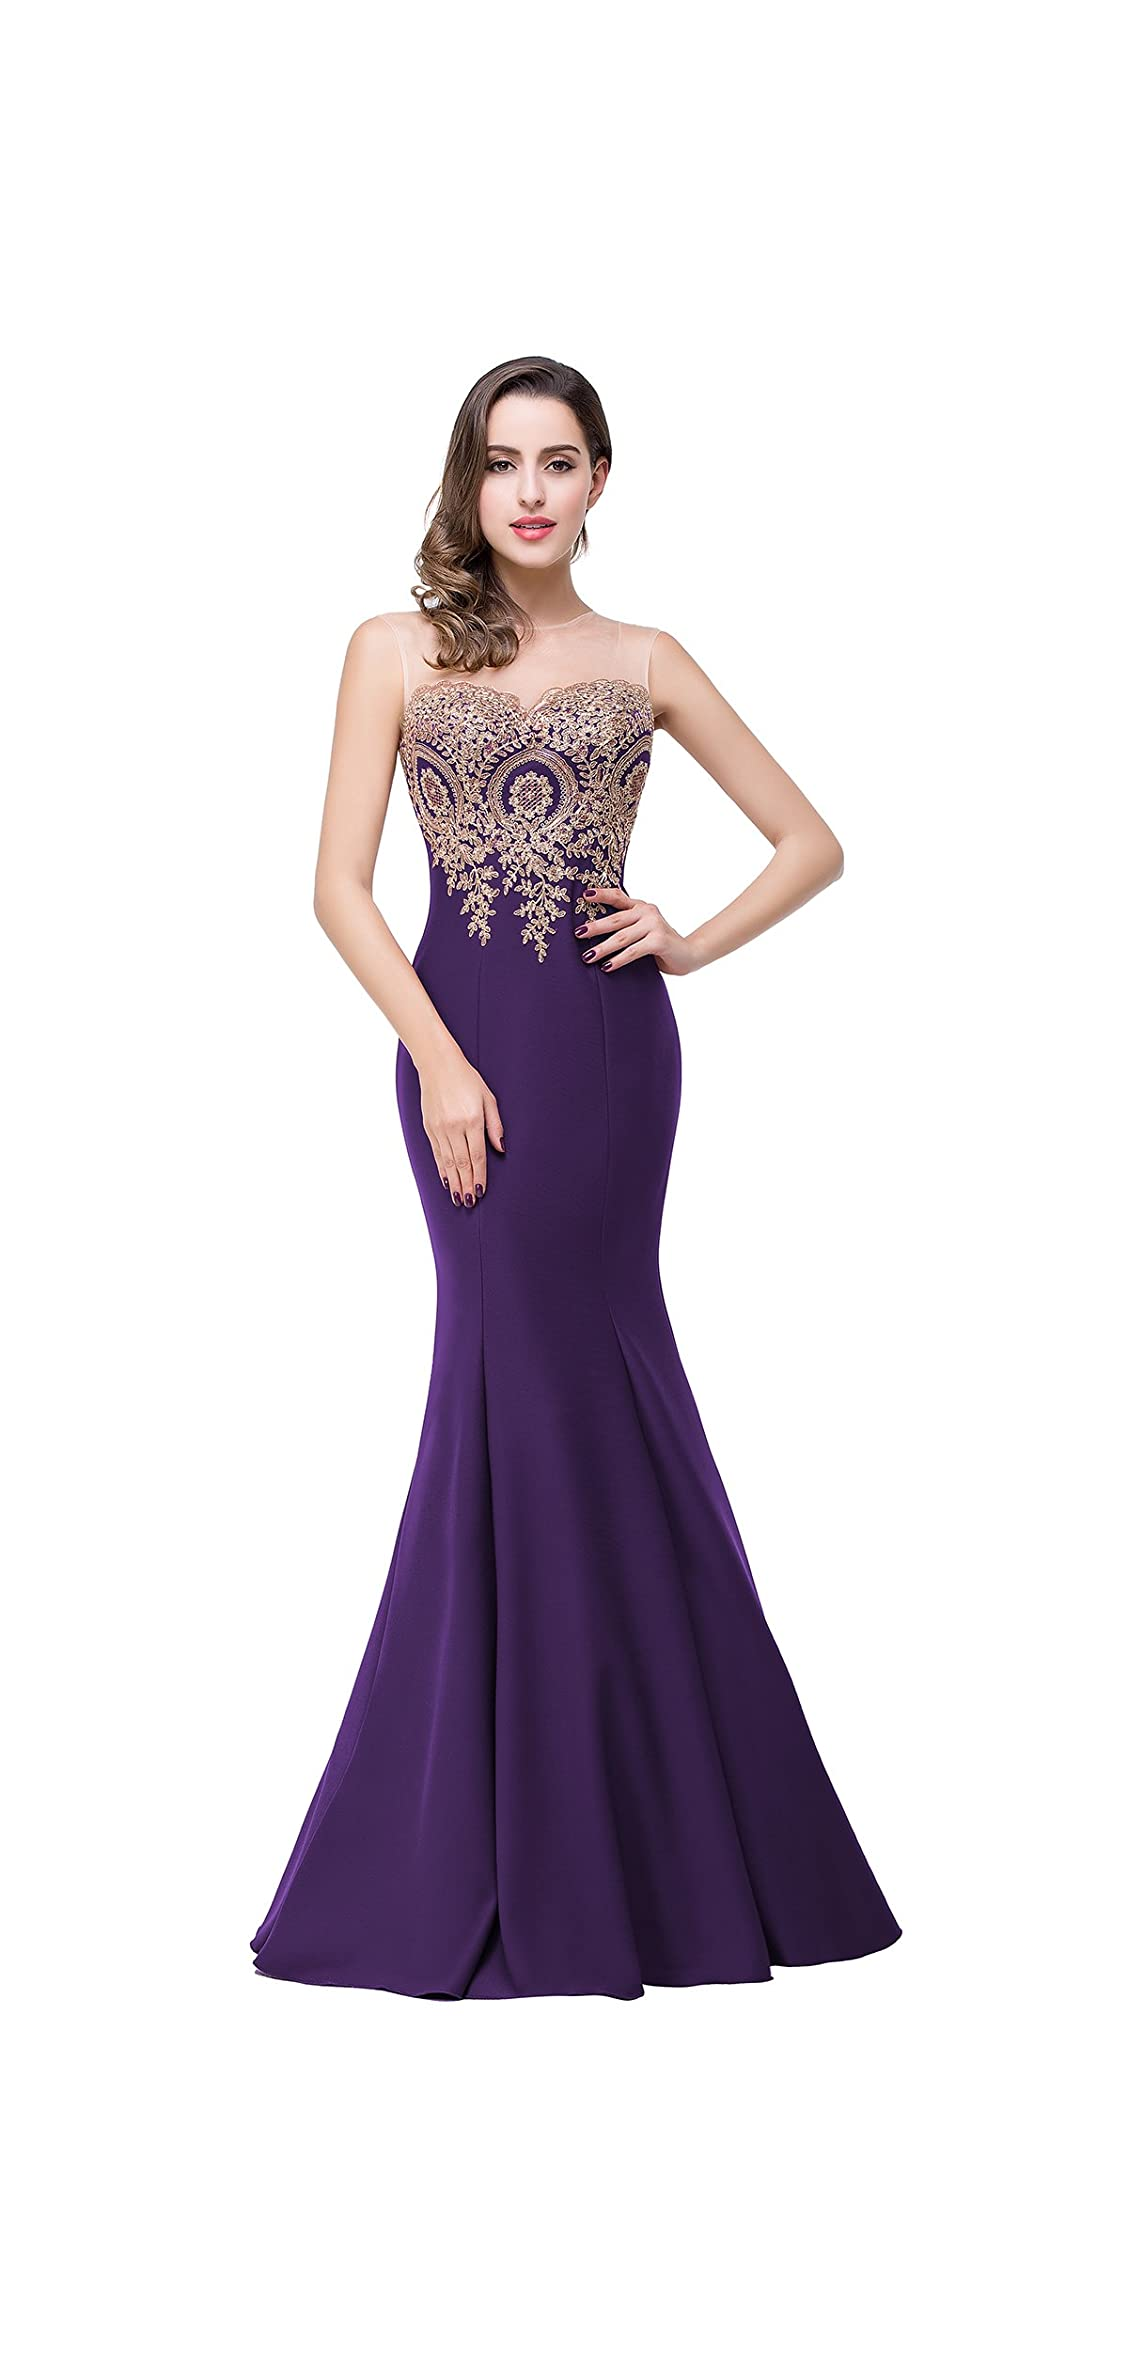 Babyonline Mermaid Evening Dress For Women Formal Lace Appliques